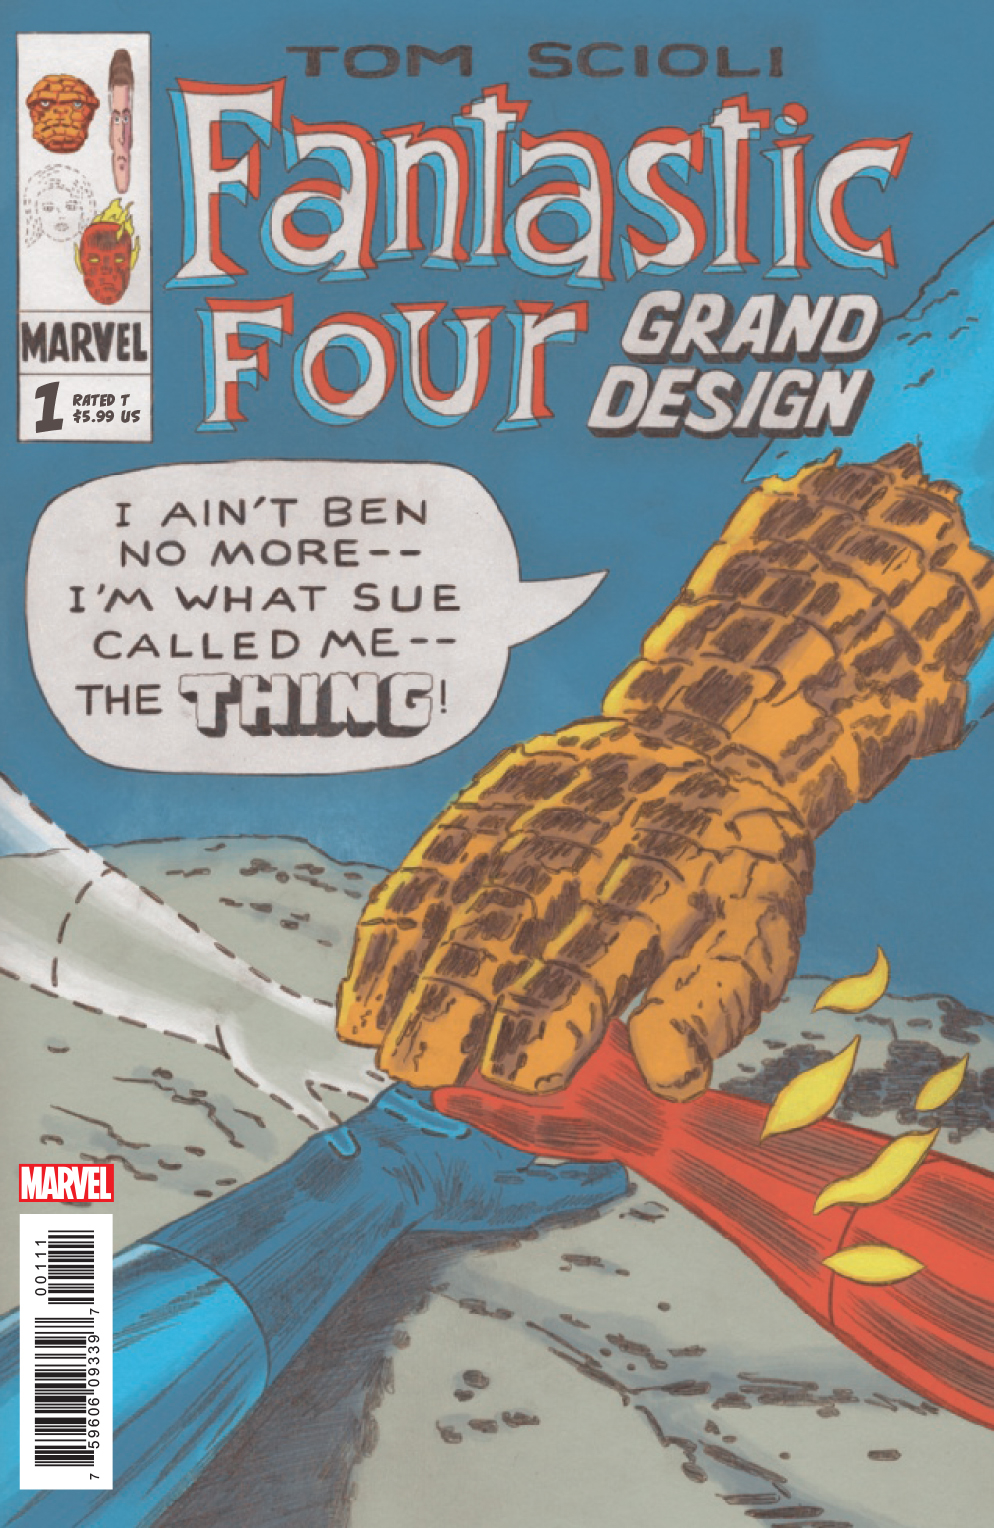 FANTASTIC FOUR GRAND DESIGN #1 (OF 2)